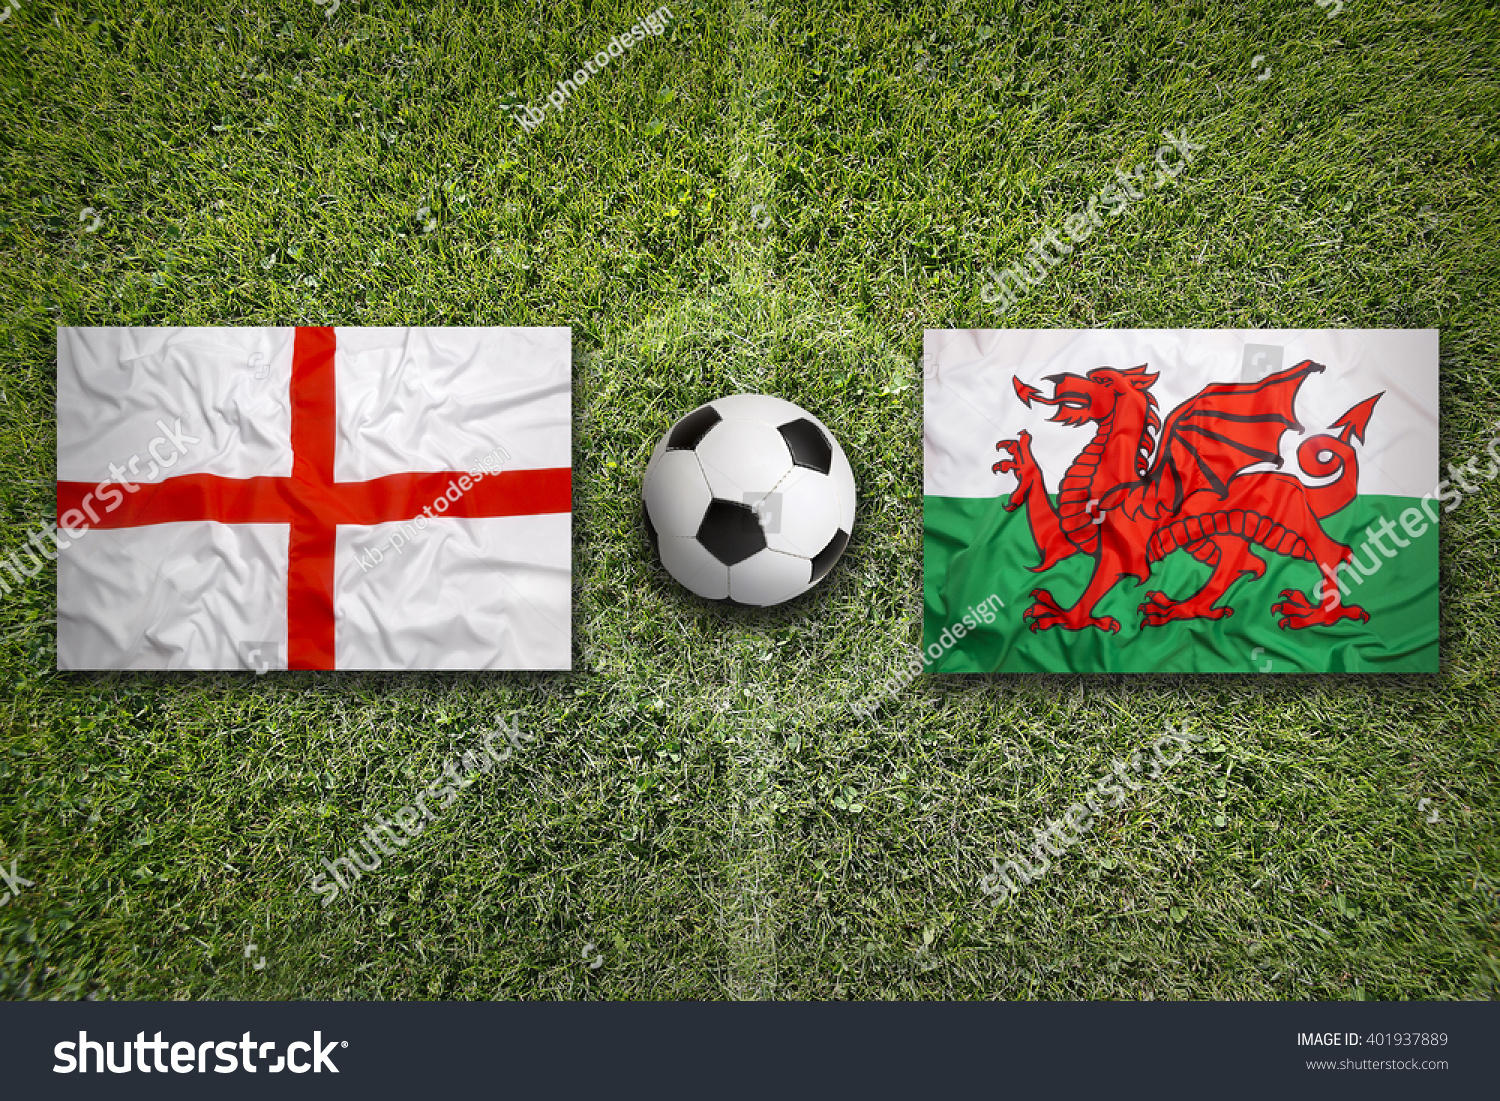 england vs wales flags on green stock photo 401937889 shutterstock